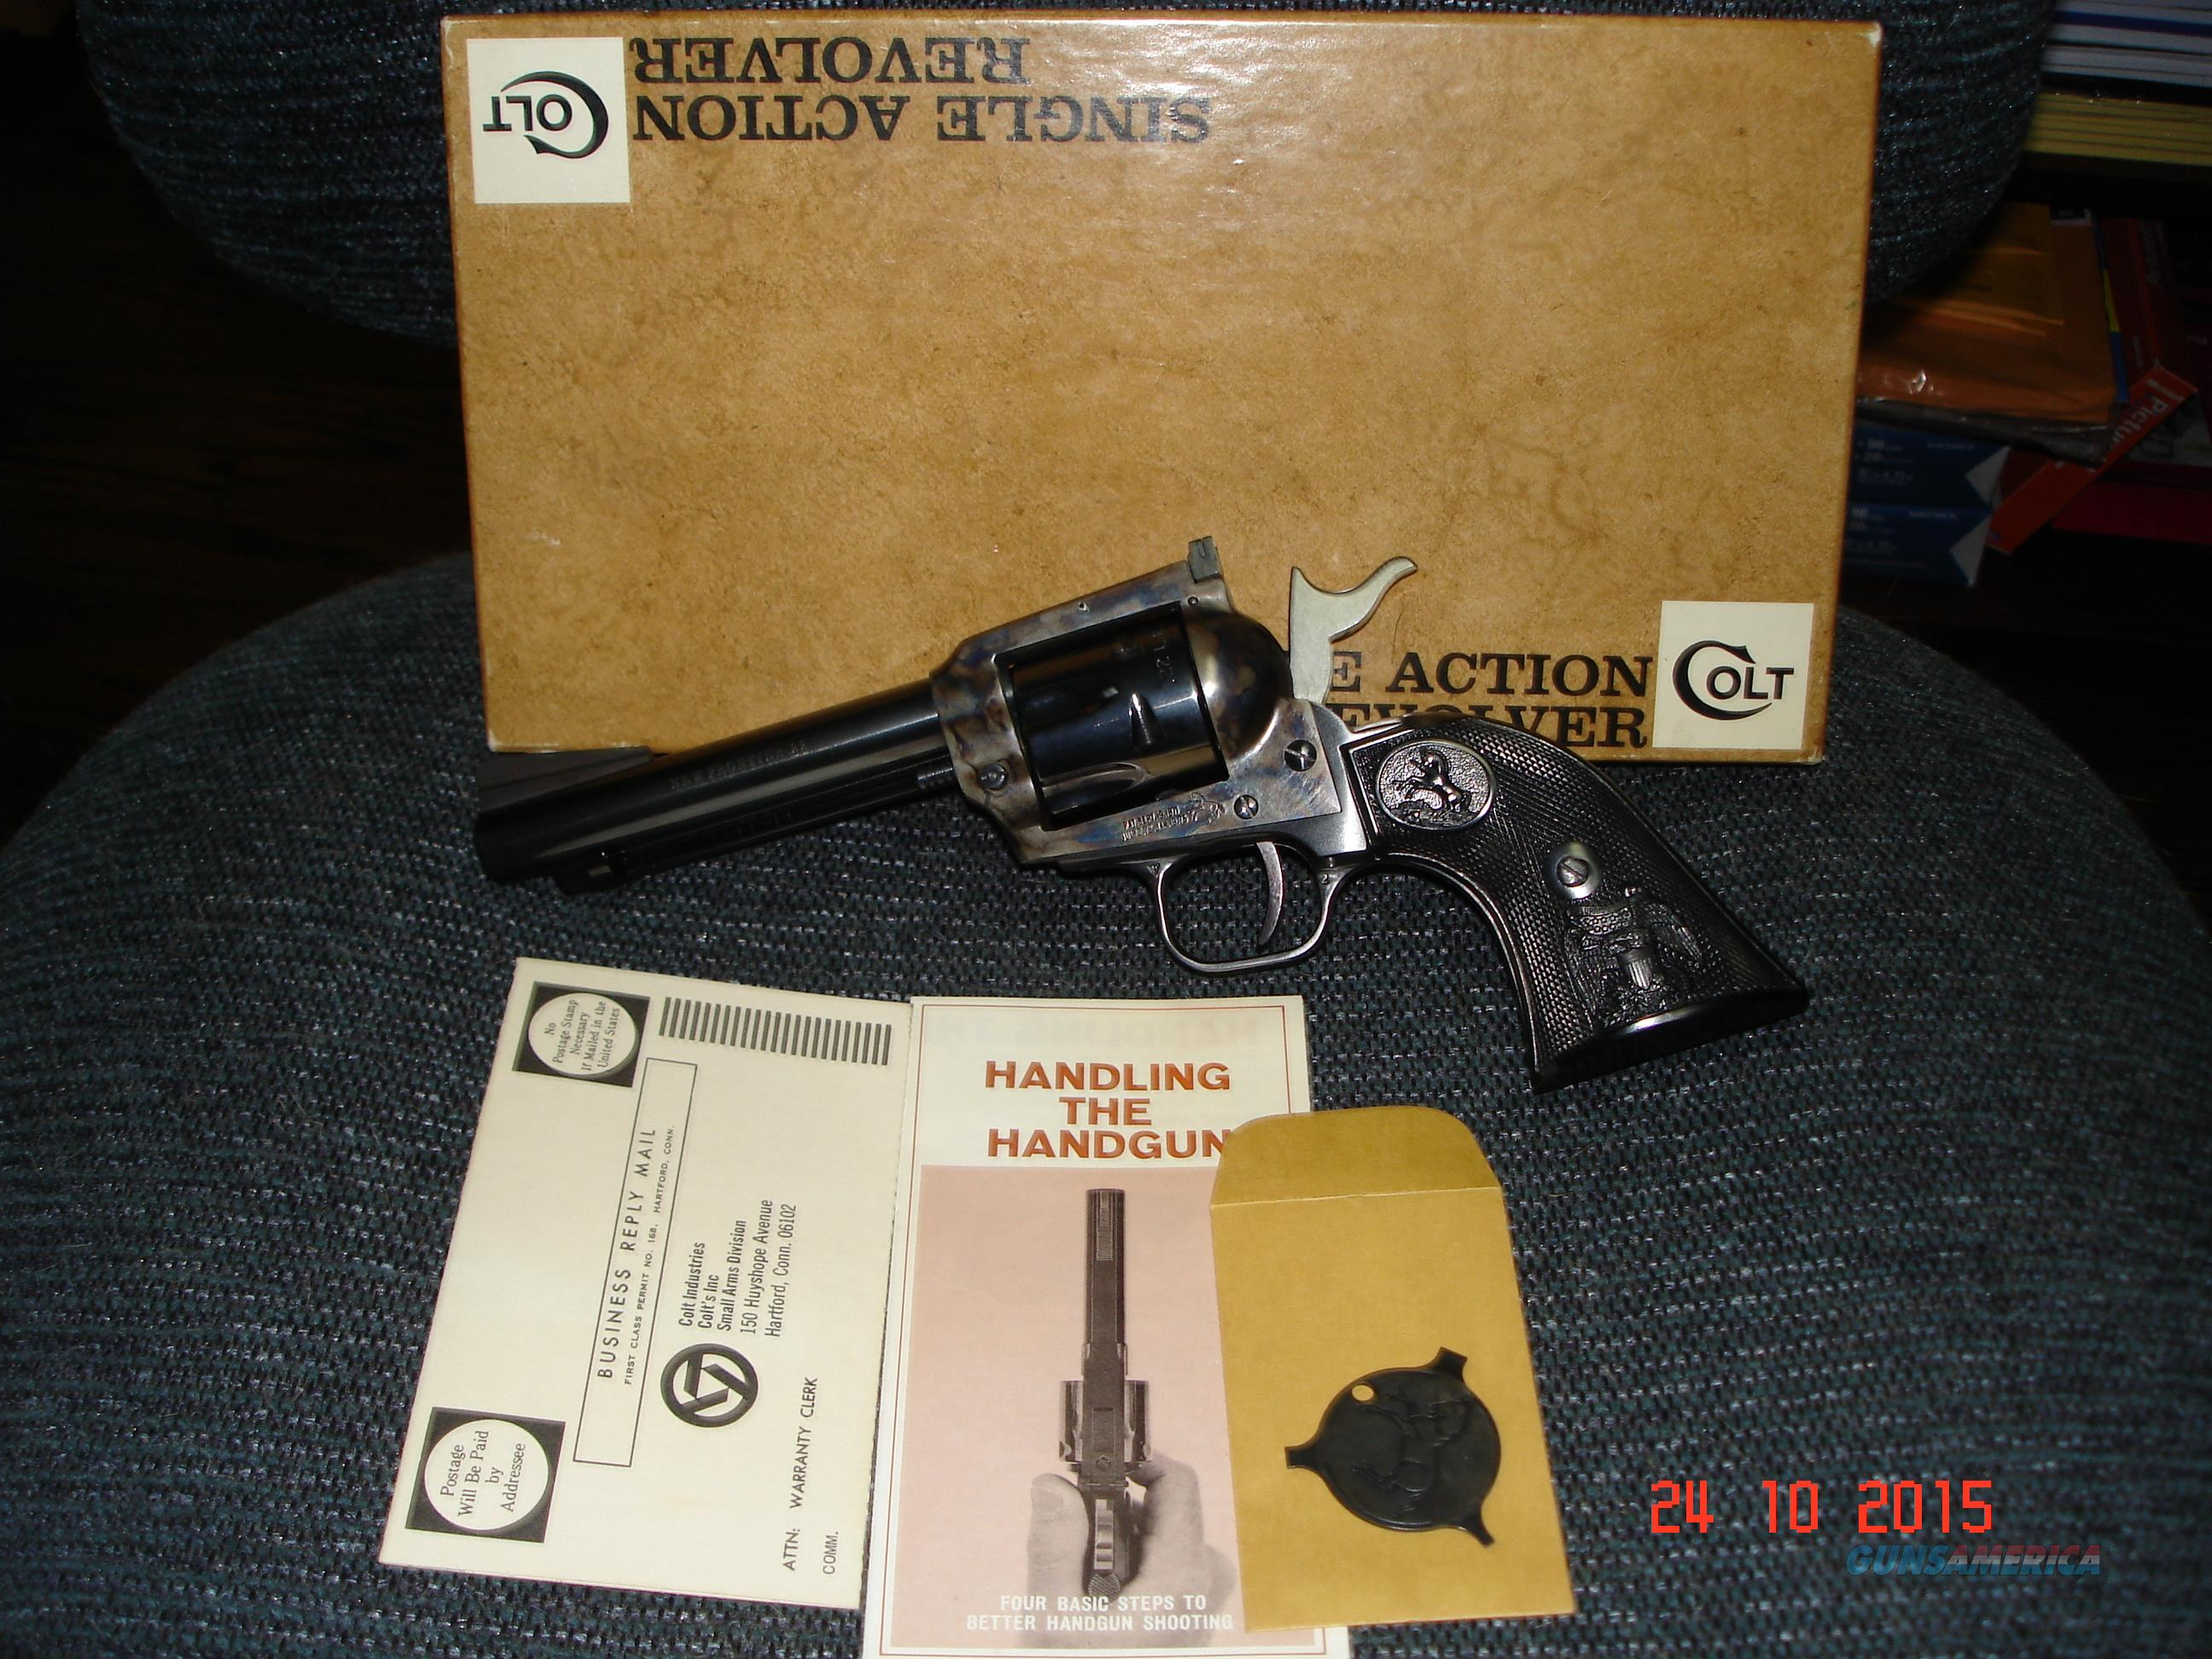 "Colt RARE New Frontier .22LR 4 3/4""BBL. ANIB MFG 1971  Guns > Pistols > Colt Single Action Revolvers - Modern (22 Cal.)"